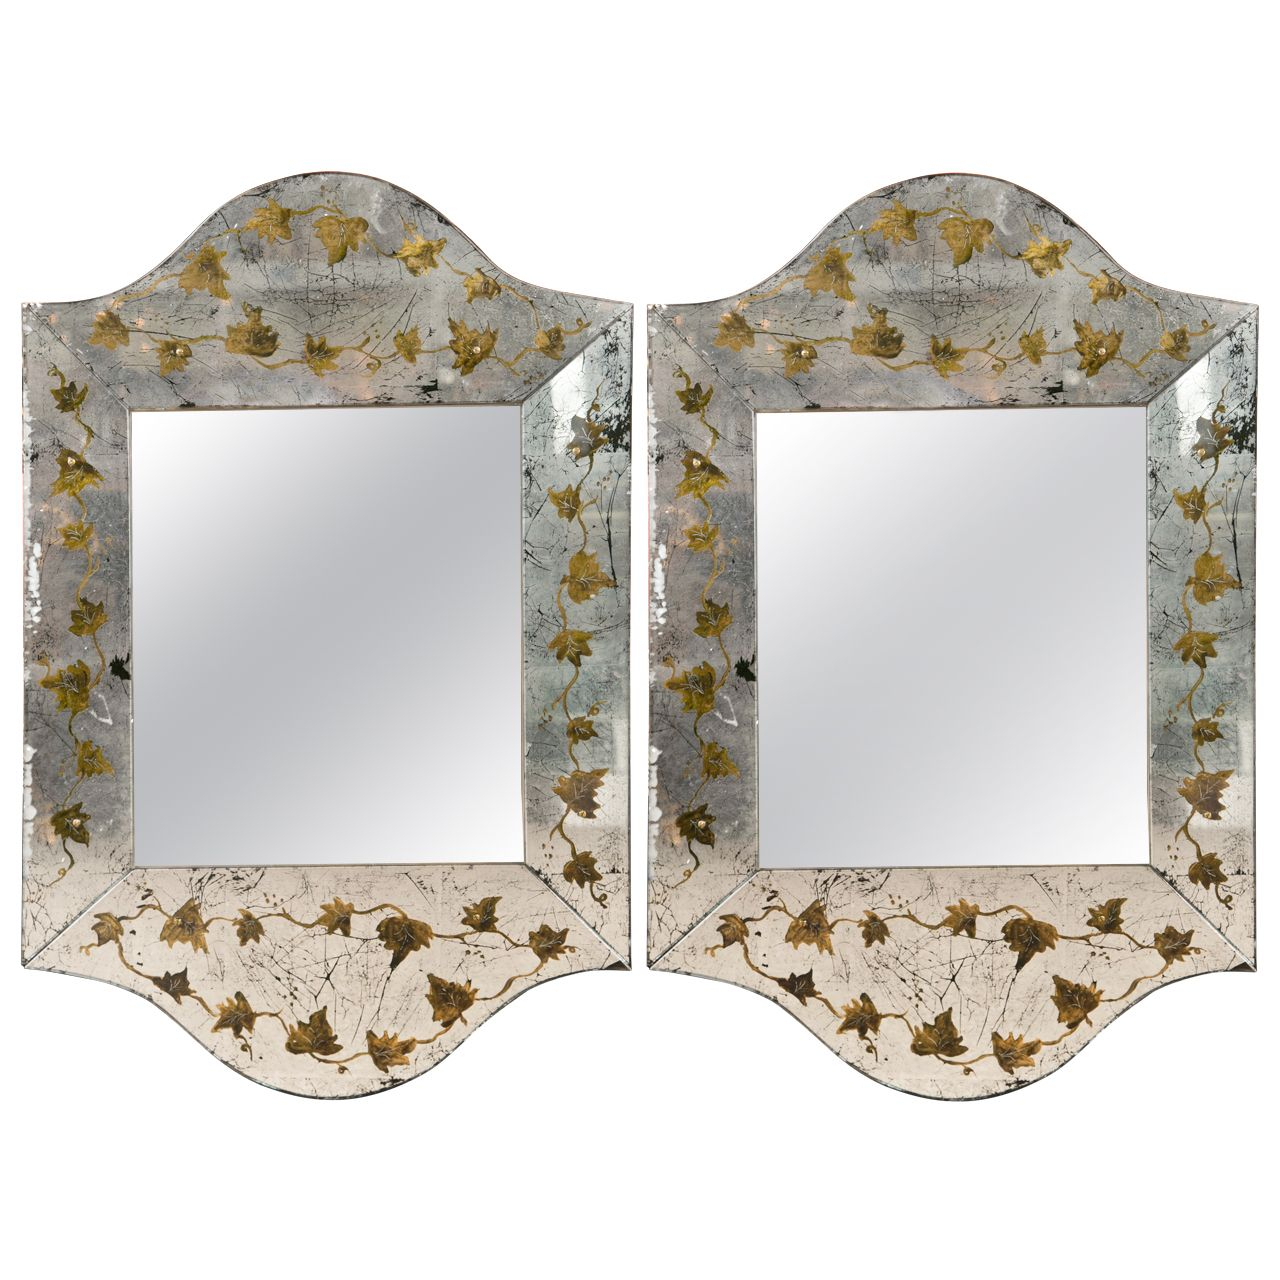 Pair Of Eglomise Glass Scalloped Mirrors | Verre Eglomise Within Dariel Tall Arched Scalloped Wall Mirrors (View 13 of 20)